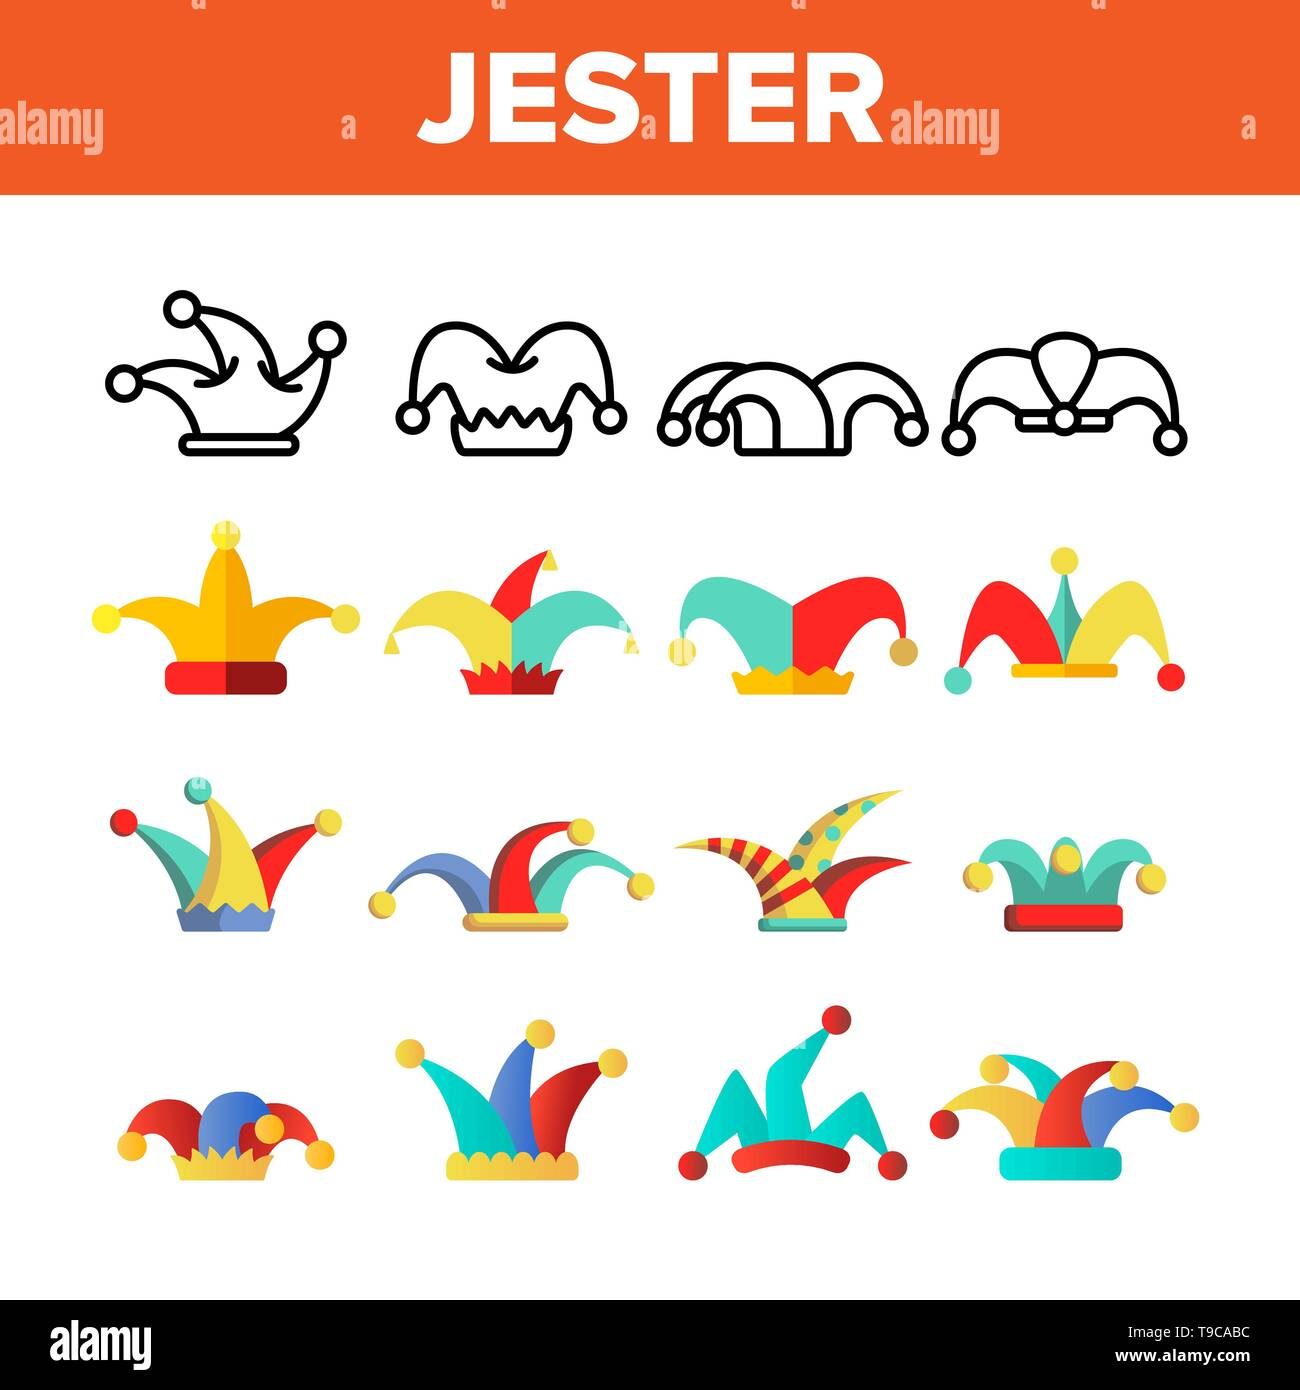 Funny Jester Hat Linear Vector Icons Set. Jester, Clown Caps with Bells Thin Line Contour Symbols Pack. Harlequin Costume Pictograms Collection. Circu Stock Vector